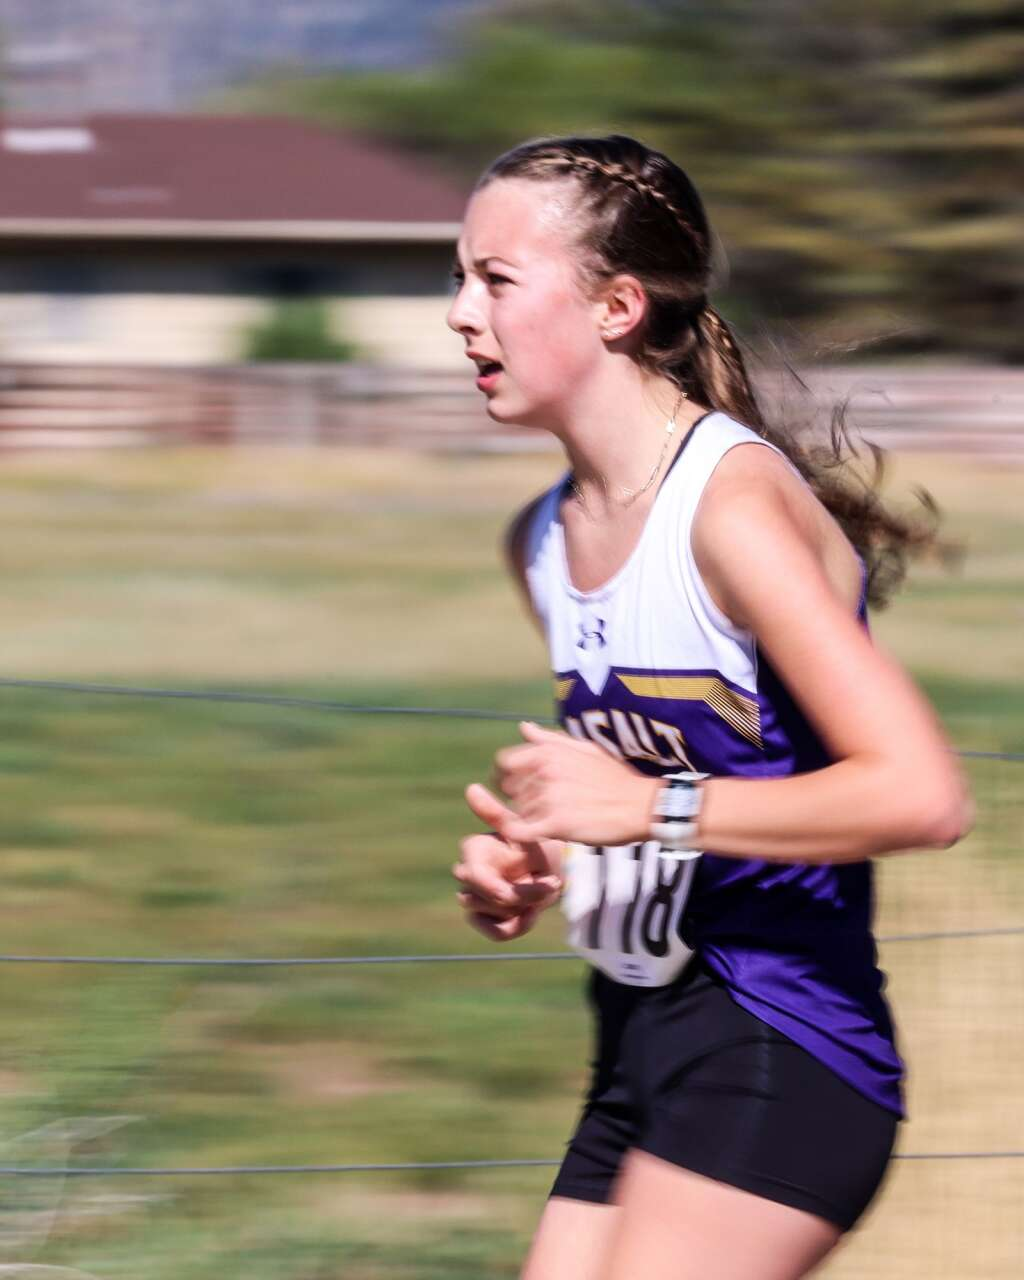 A Basalt runner competes in the Longhorn Invitational cross country meet on Saturday, Aug. 28, 2021, at Crown Mountain Park in El Jebel. Photo by Austin Colbert/The Aspen Times.